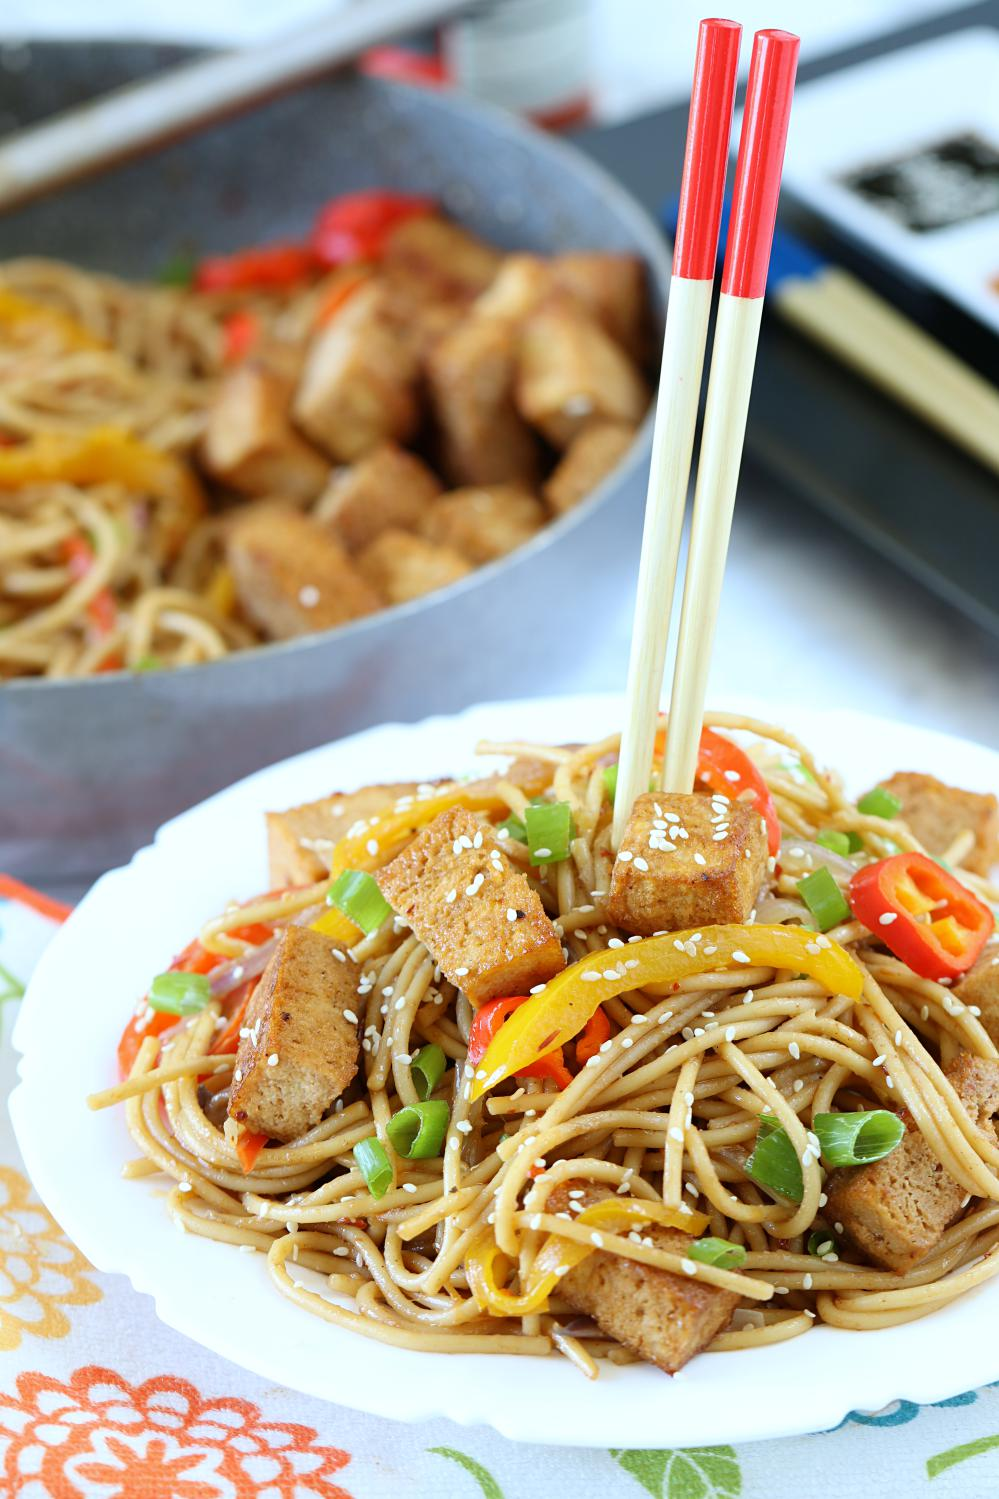 Chili Noodles With Grilled Tofu